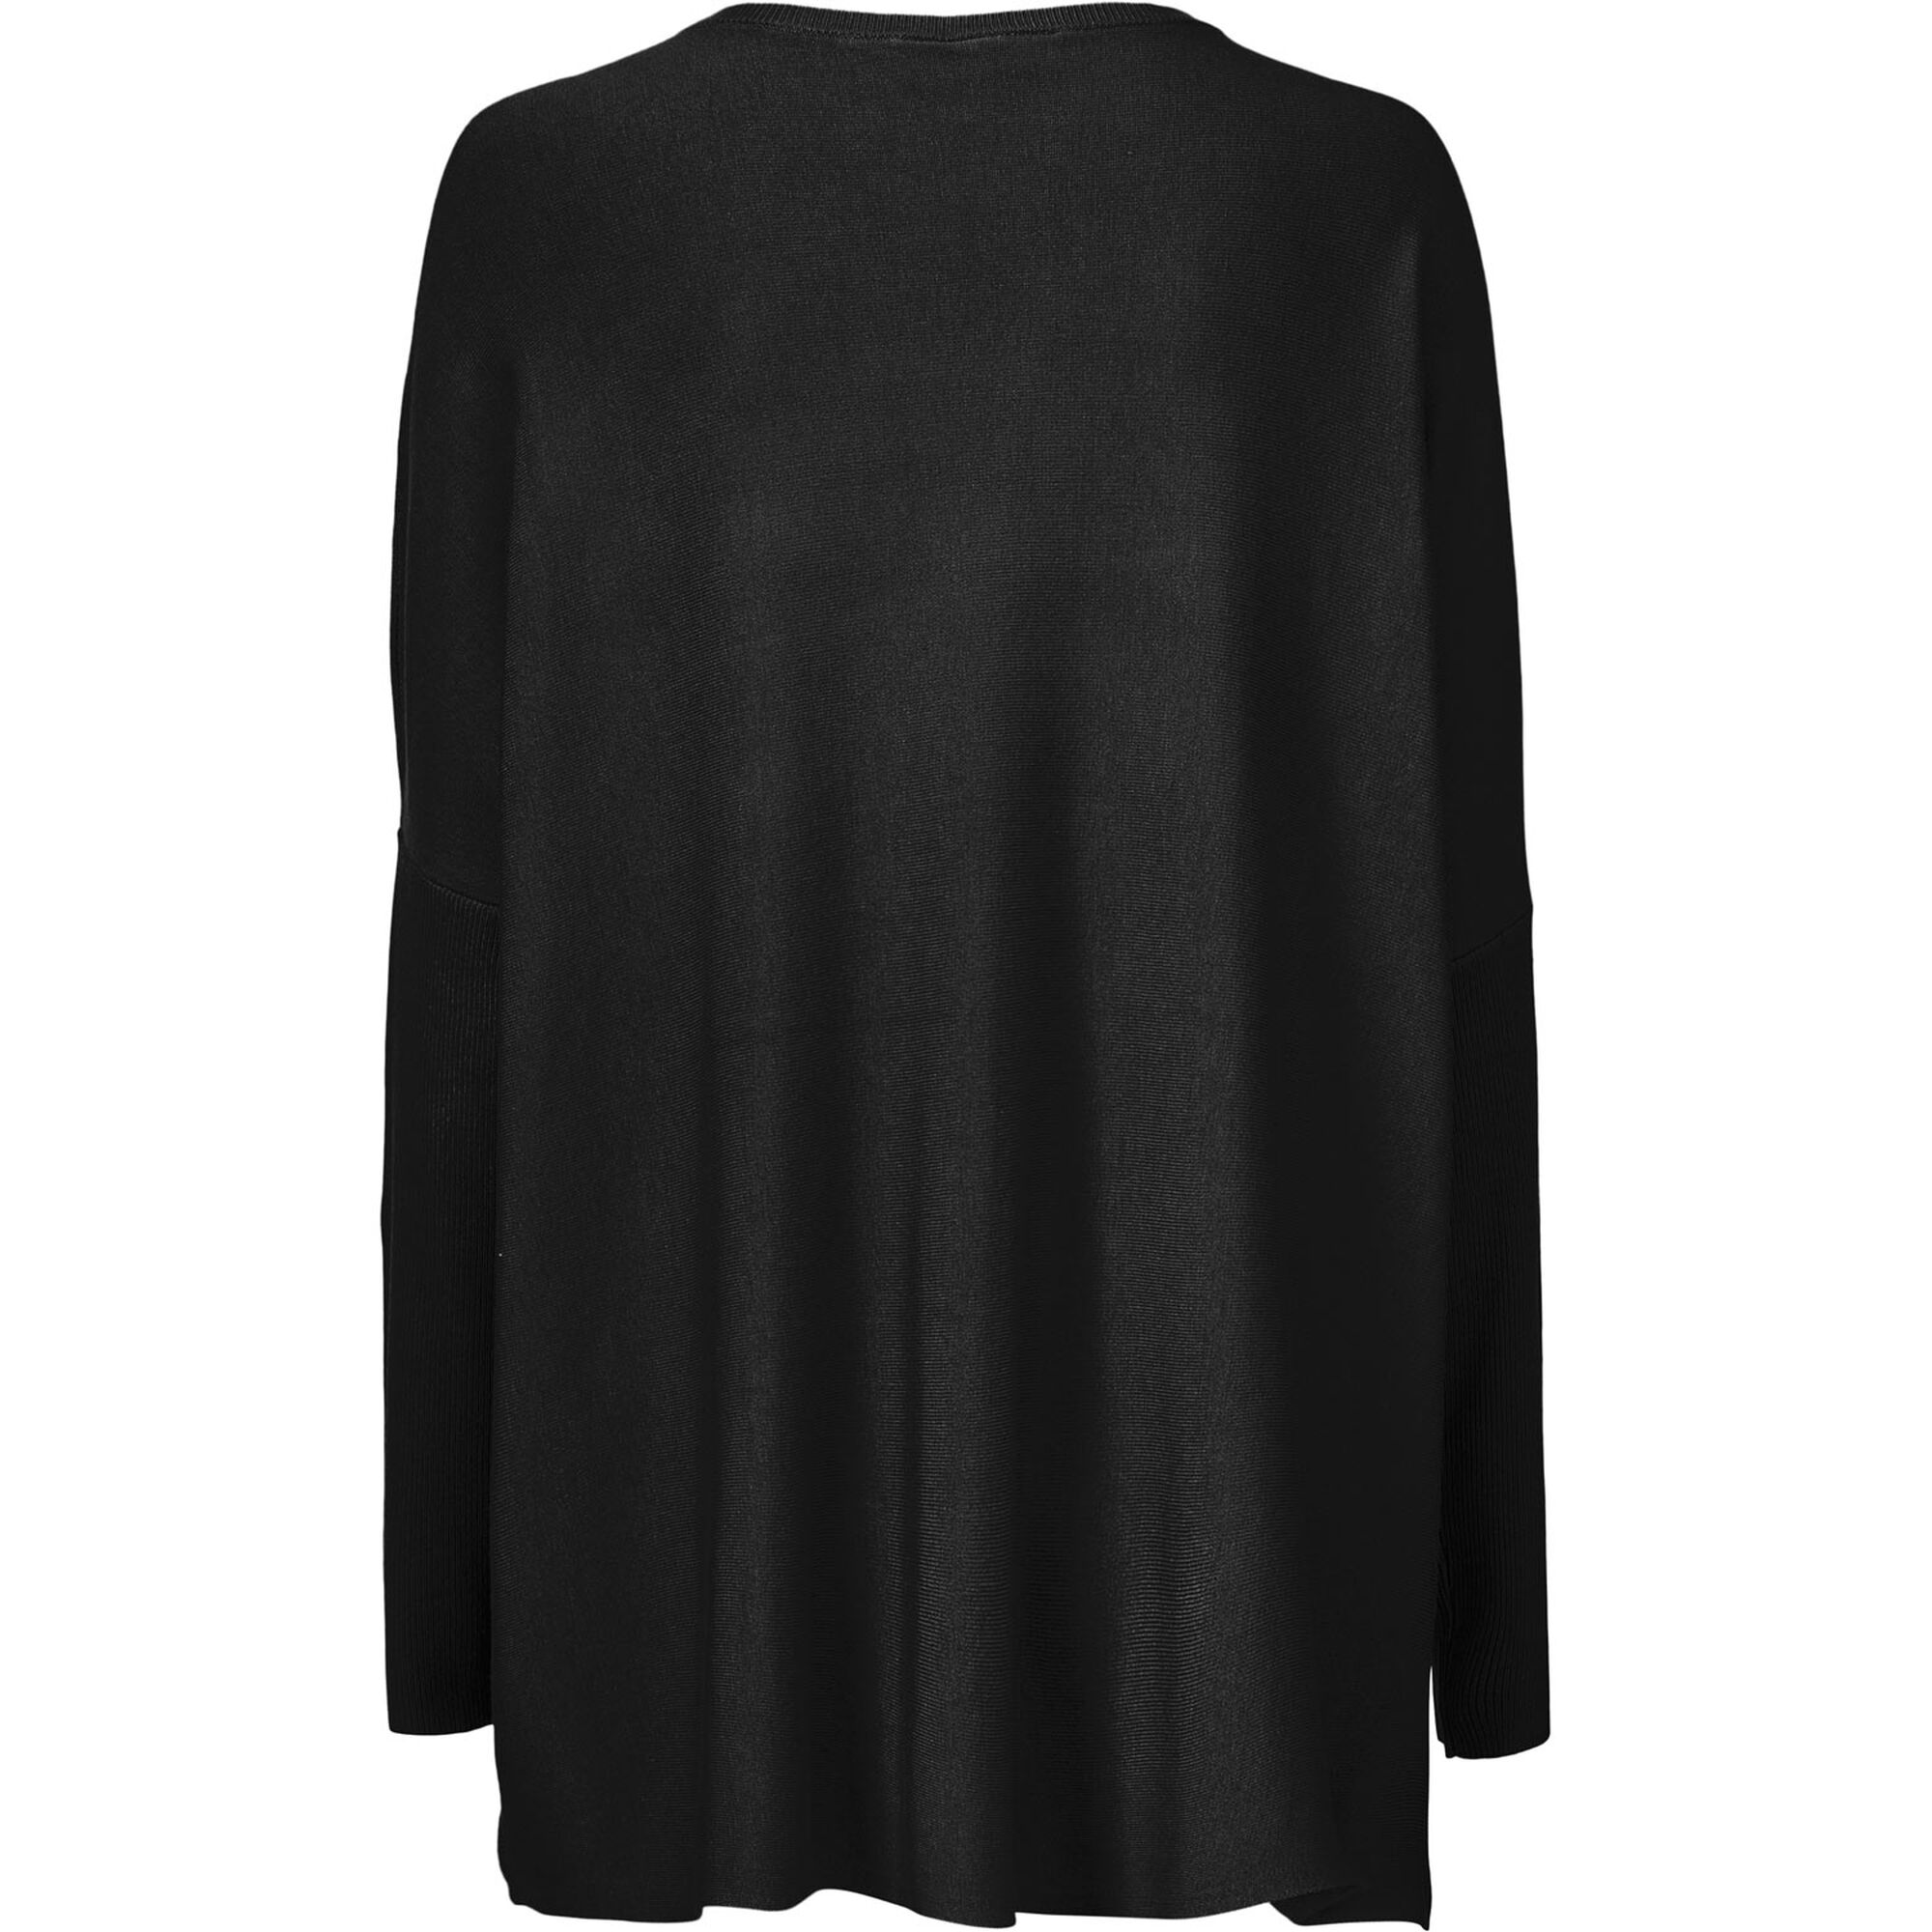 FANASI TOP, Black, hi-res